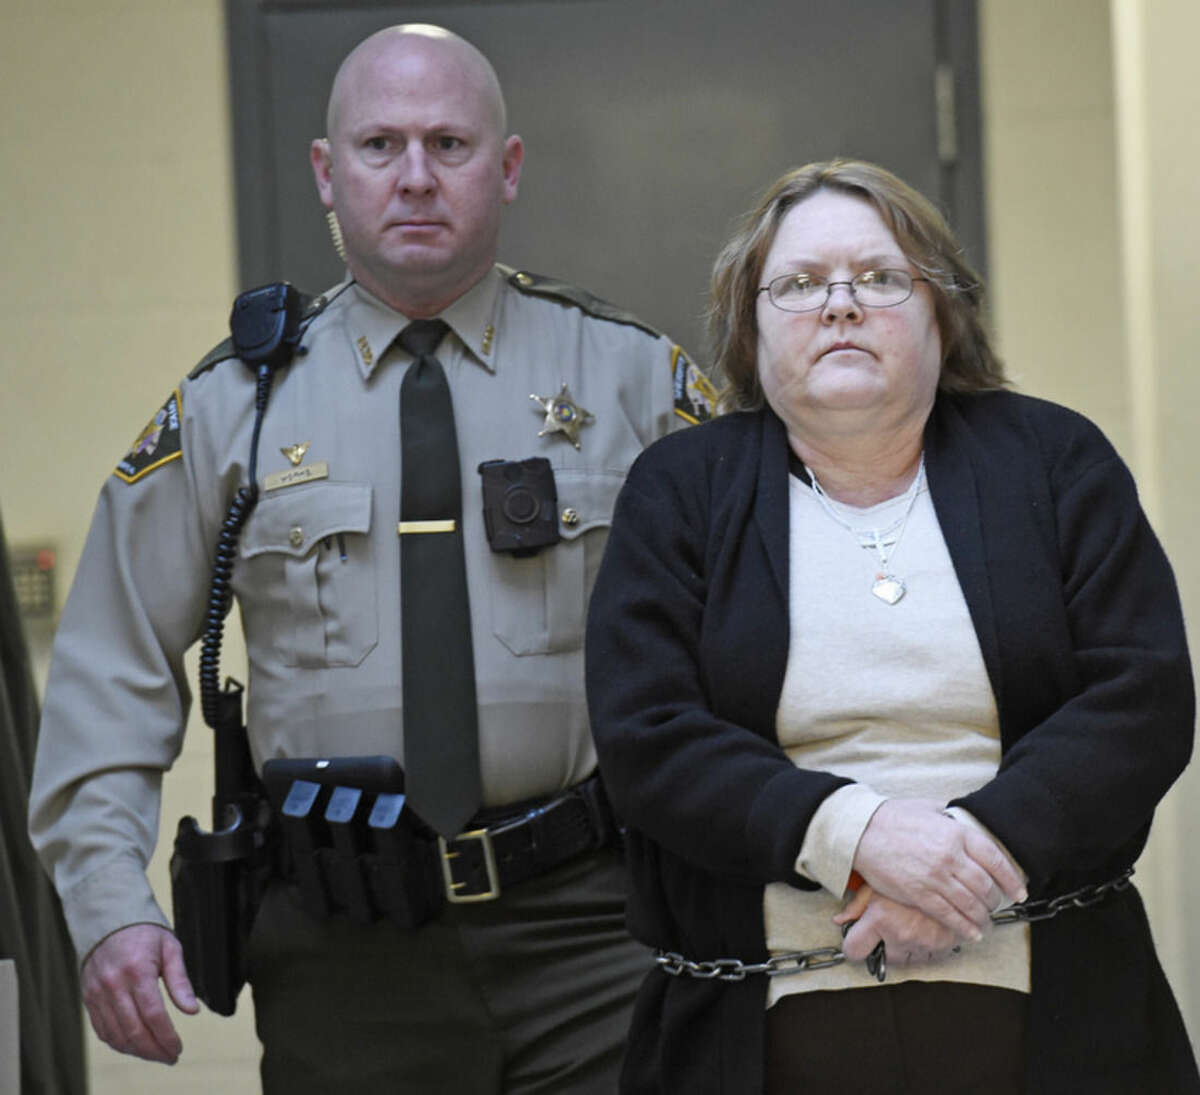 Joyce Hardin Garrard walks to the Etowah County Judicial Building from the Etowah County Detention Center in Gadsden, Ala. on Friday March 20, 2015. Garrard is accused of making her granddaughter run until she died. She faces capital murder charges. (AP Photo/The Gadsden Times, Eric T. Wright)